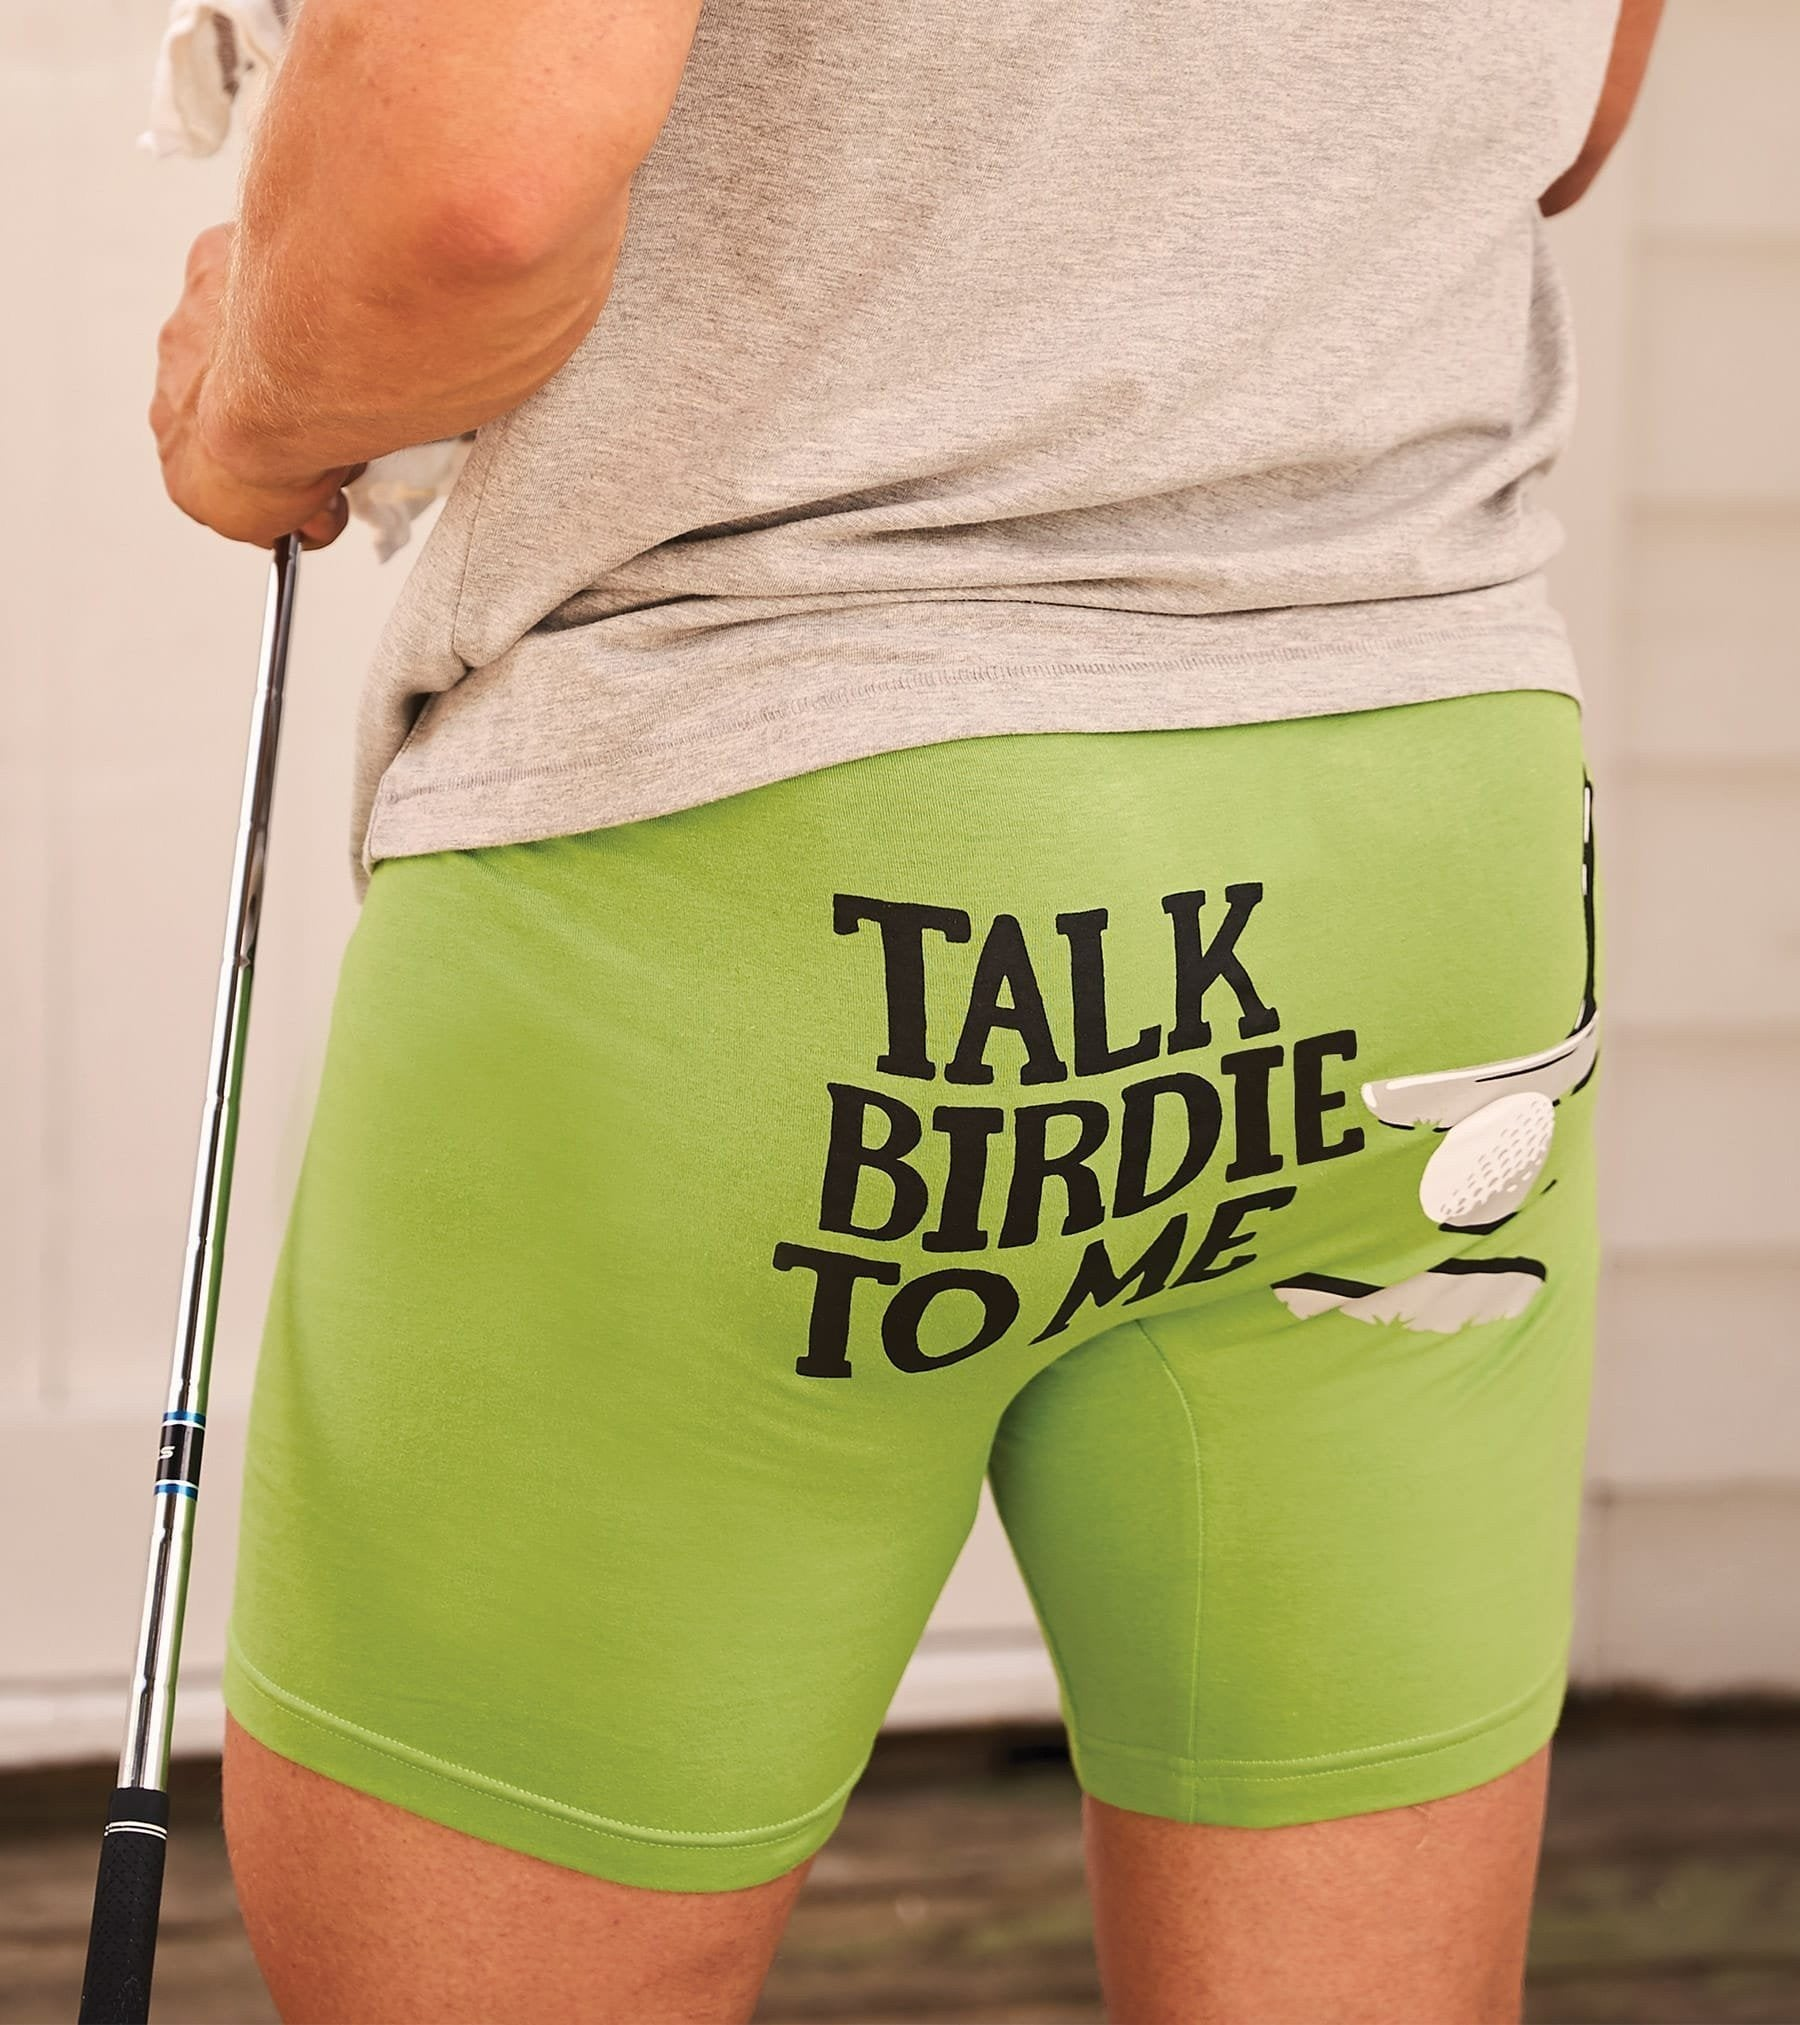 """TALK BIRDIE TO ME"" MEN'S BOXER BRIEFS - Molly's! A Chic and Unique Boutique"